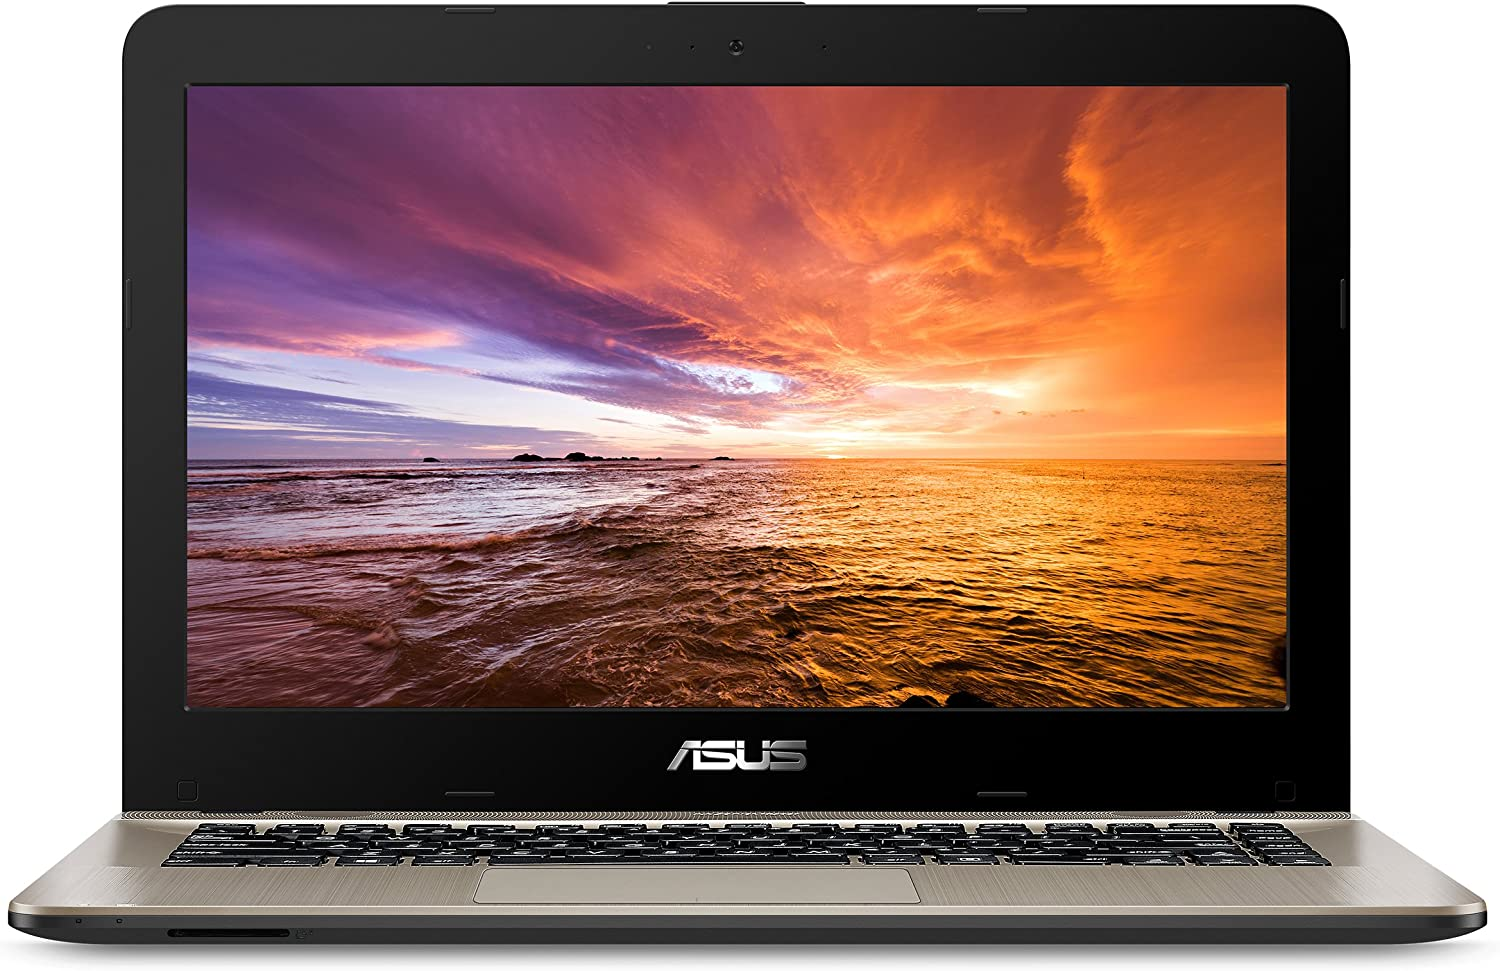 "Asus VivoBook F441 Light and Powerful Laptop, AMD A9 Dual Core Processor (Boost Up to 3.6 GHz), Radeon R5 Graphics, 8GB DDR4 RAM, 256GB SSD, 14"" FHD Display, Windows 10, F441BA-DS94"